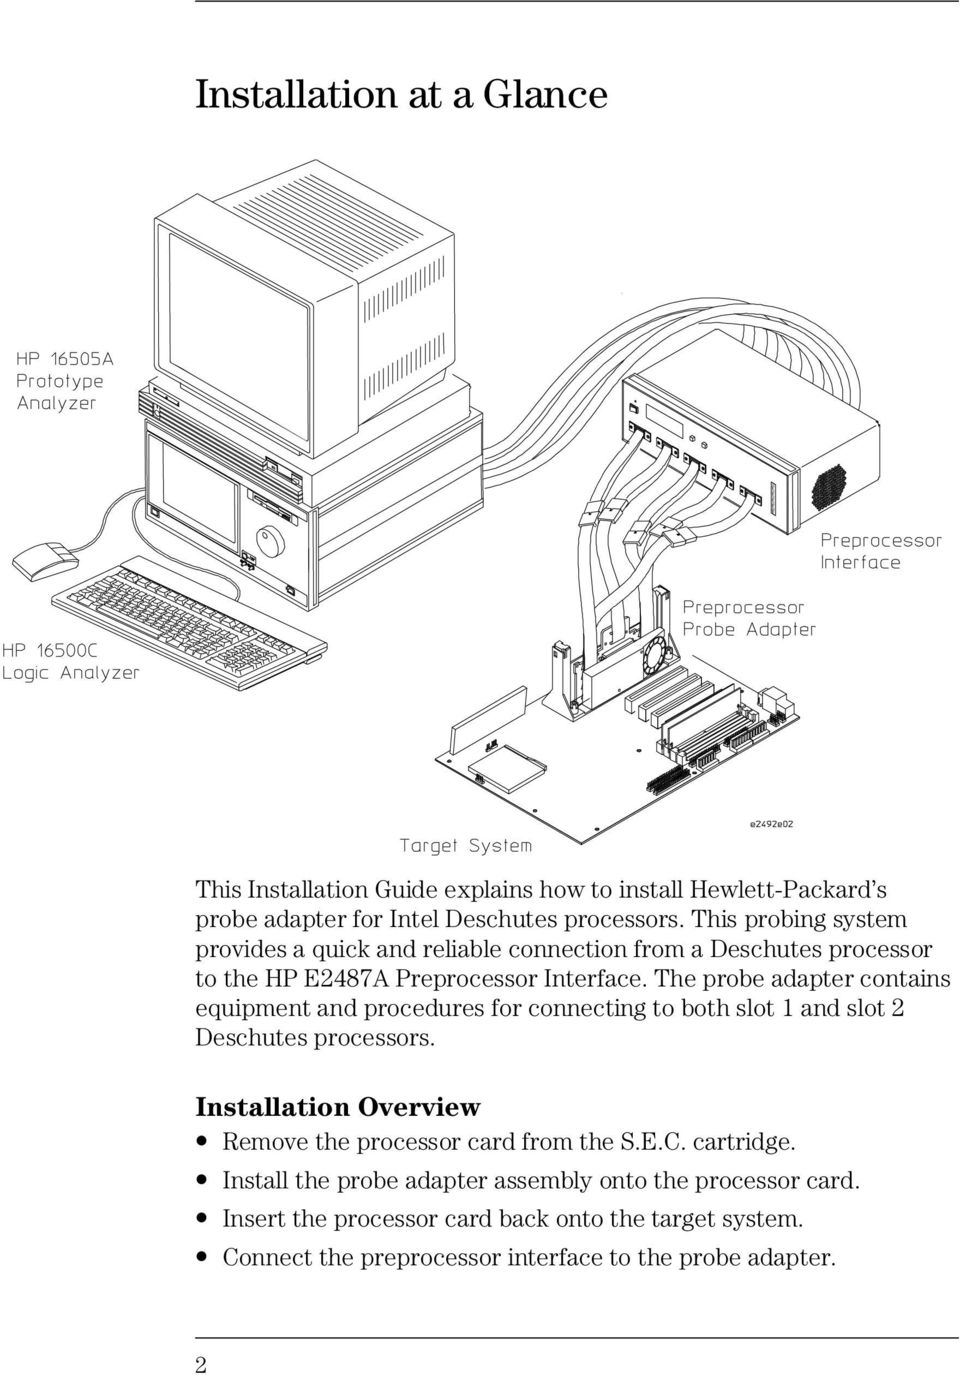 The probe adapter contains equipment and procedures for connecting to both slot 1 and slot 2 Deschutes processors.